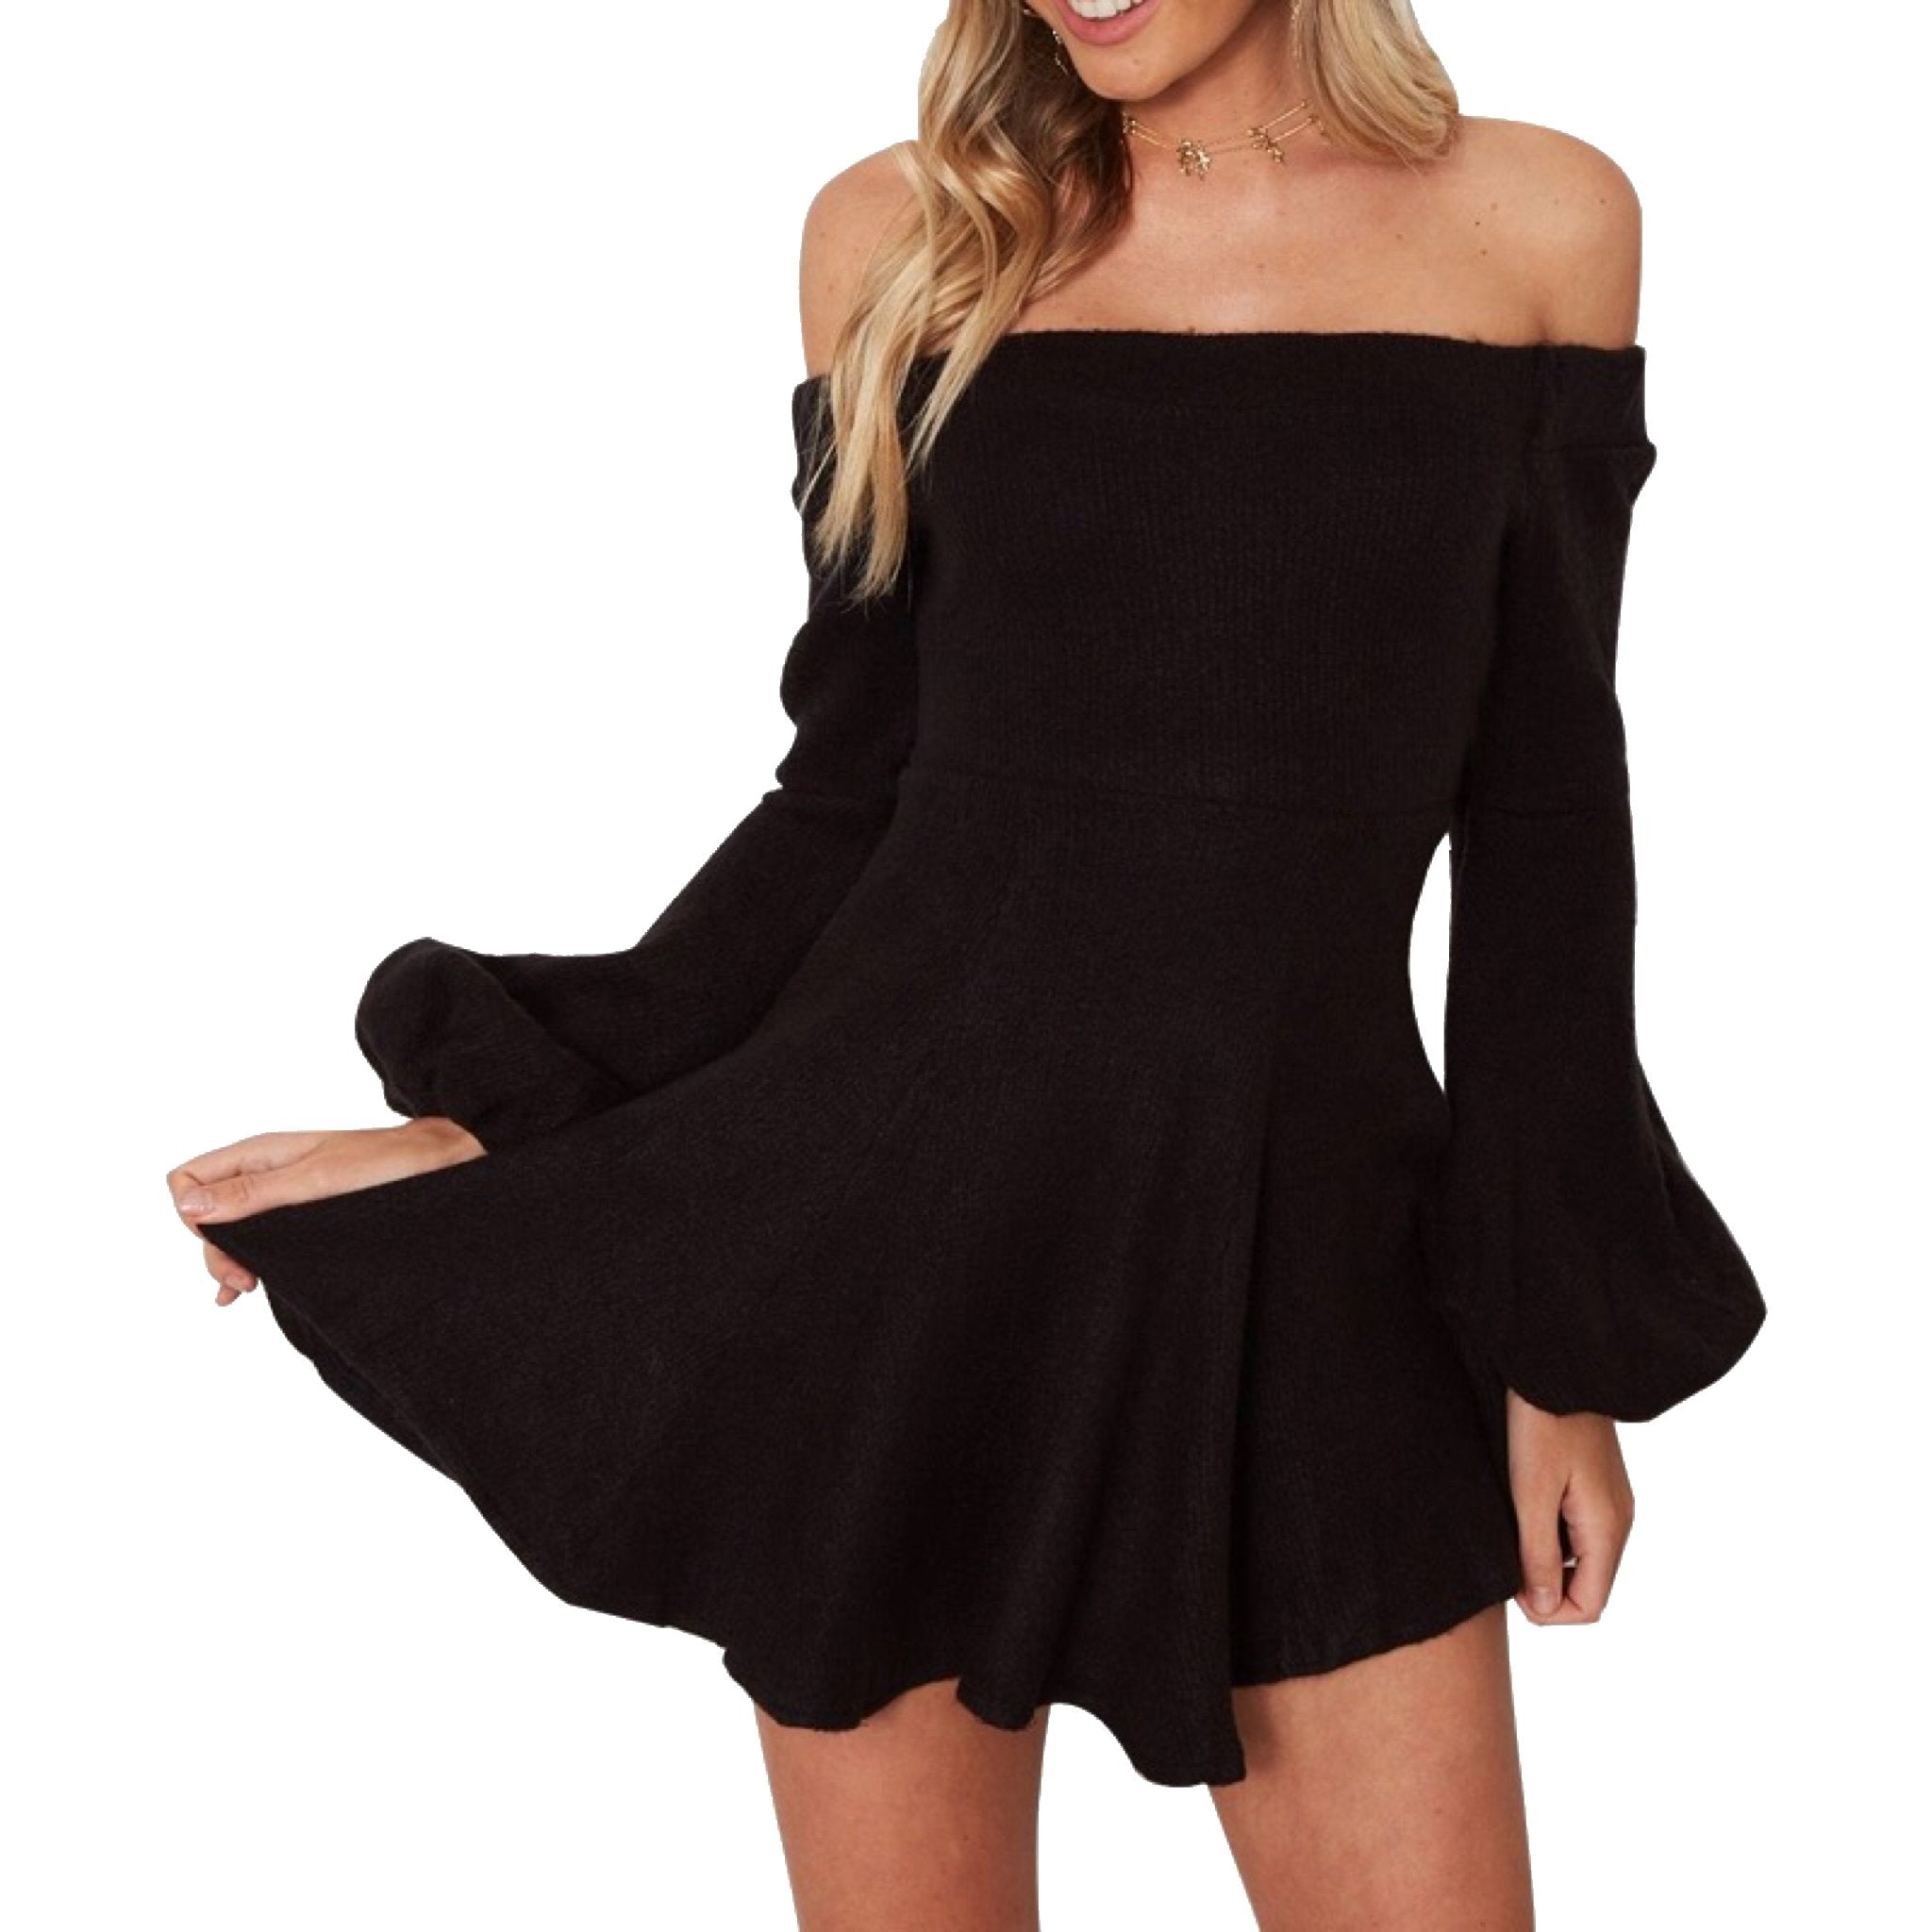 976a8acd0d8e ... Off The Shoulder Balloon Sleeve Knit Mini Dress in Black-Lookbook  Boutique. Size